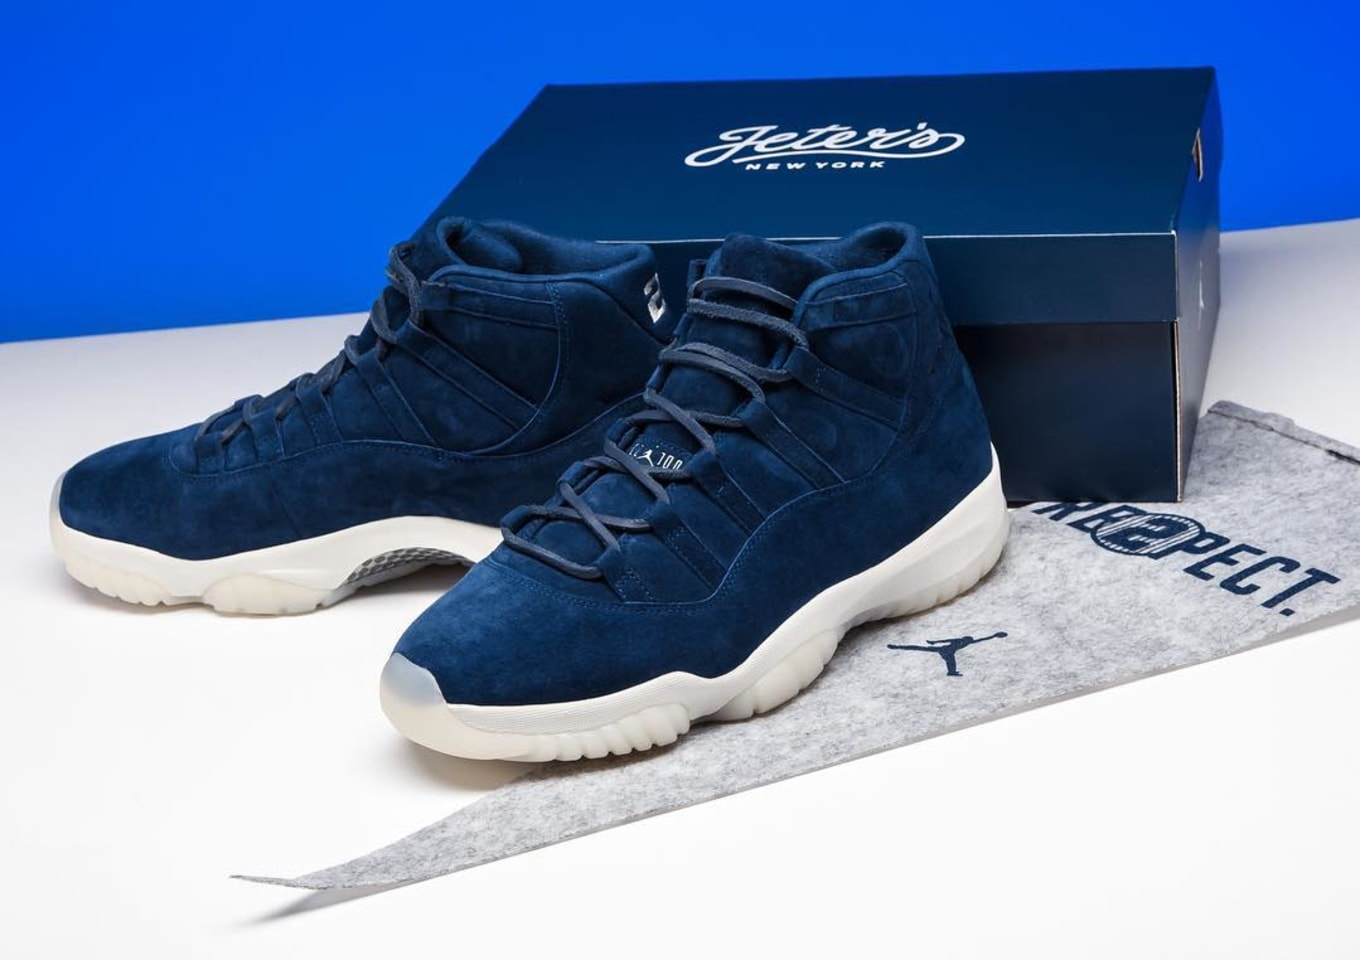 buy popular ce60c 40dfe Derek Jeter Air Jordan 11 XI Navy Blue Suede $40,000 | Sole ...